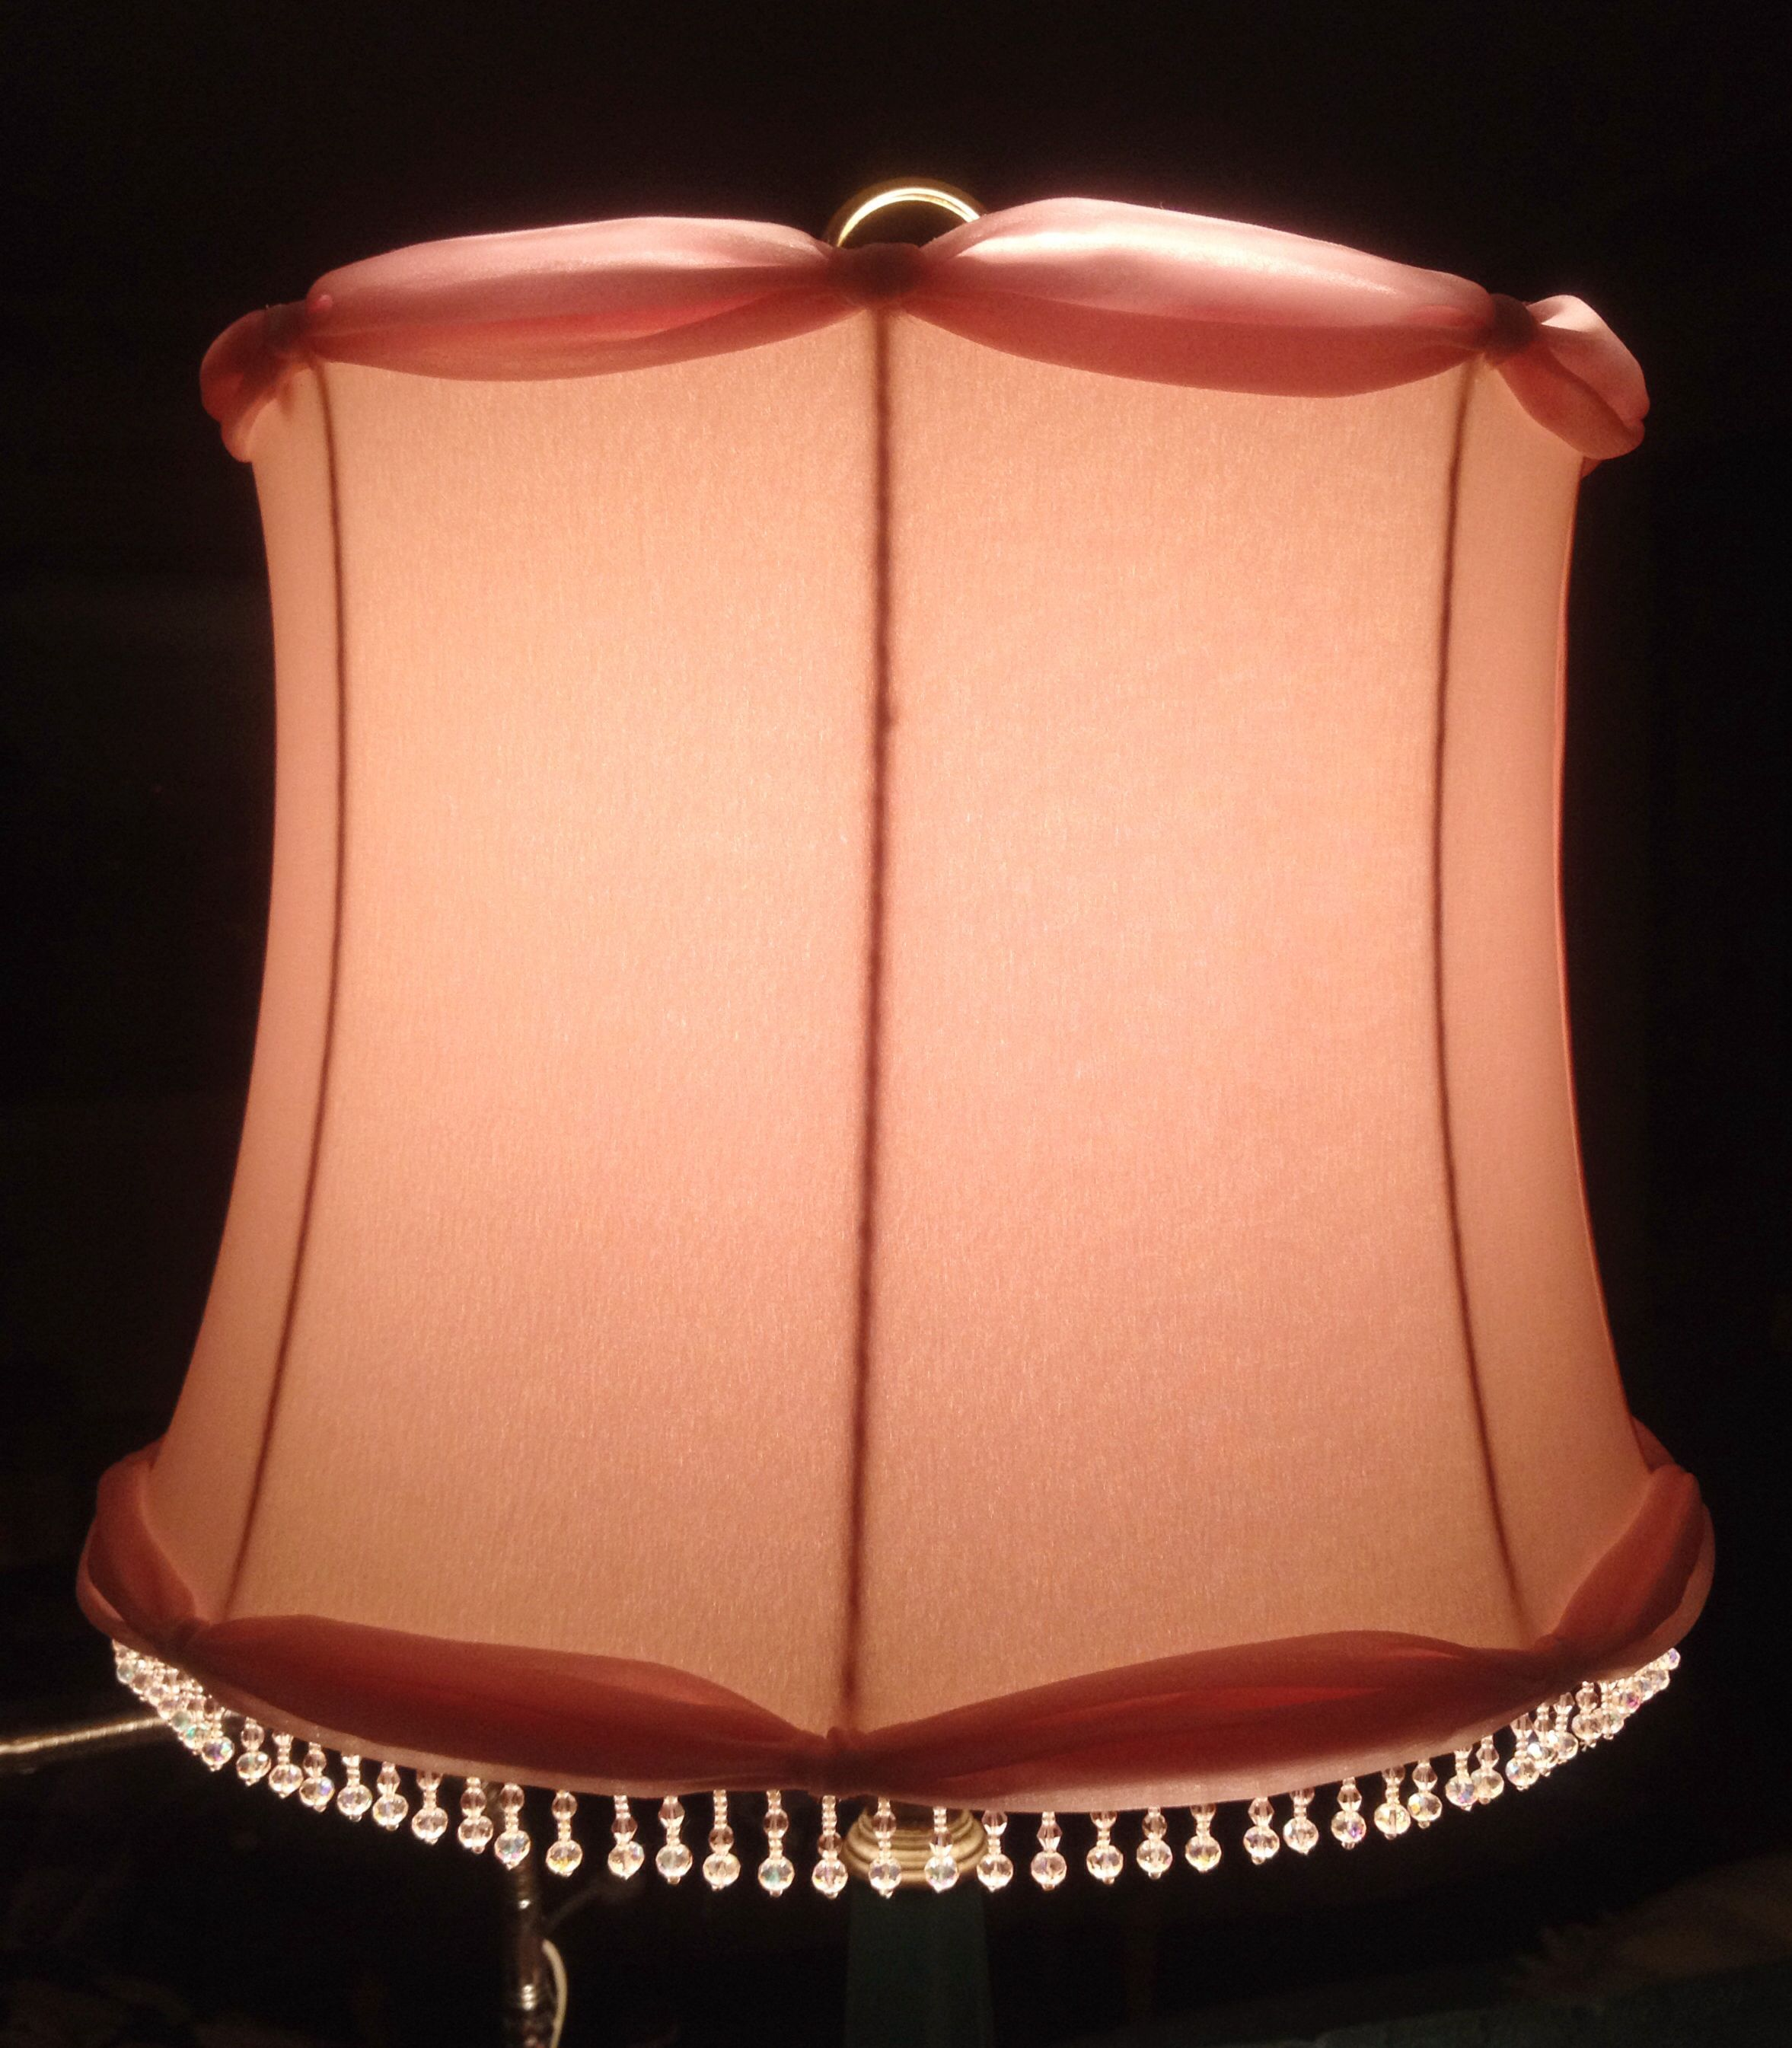 A Recreation Of A Mid 1930 S Table Lamp Shade Two Layers Of Pink Chiffon Over Top An Oyster Satin Outer Lining With A White Inner Lining The Shade Is Trimmed